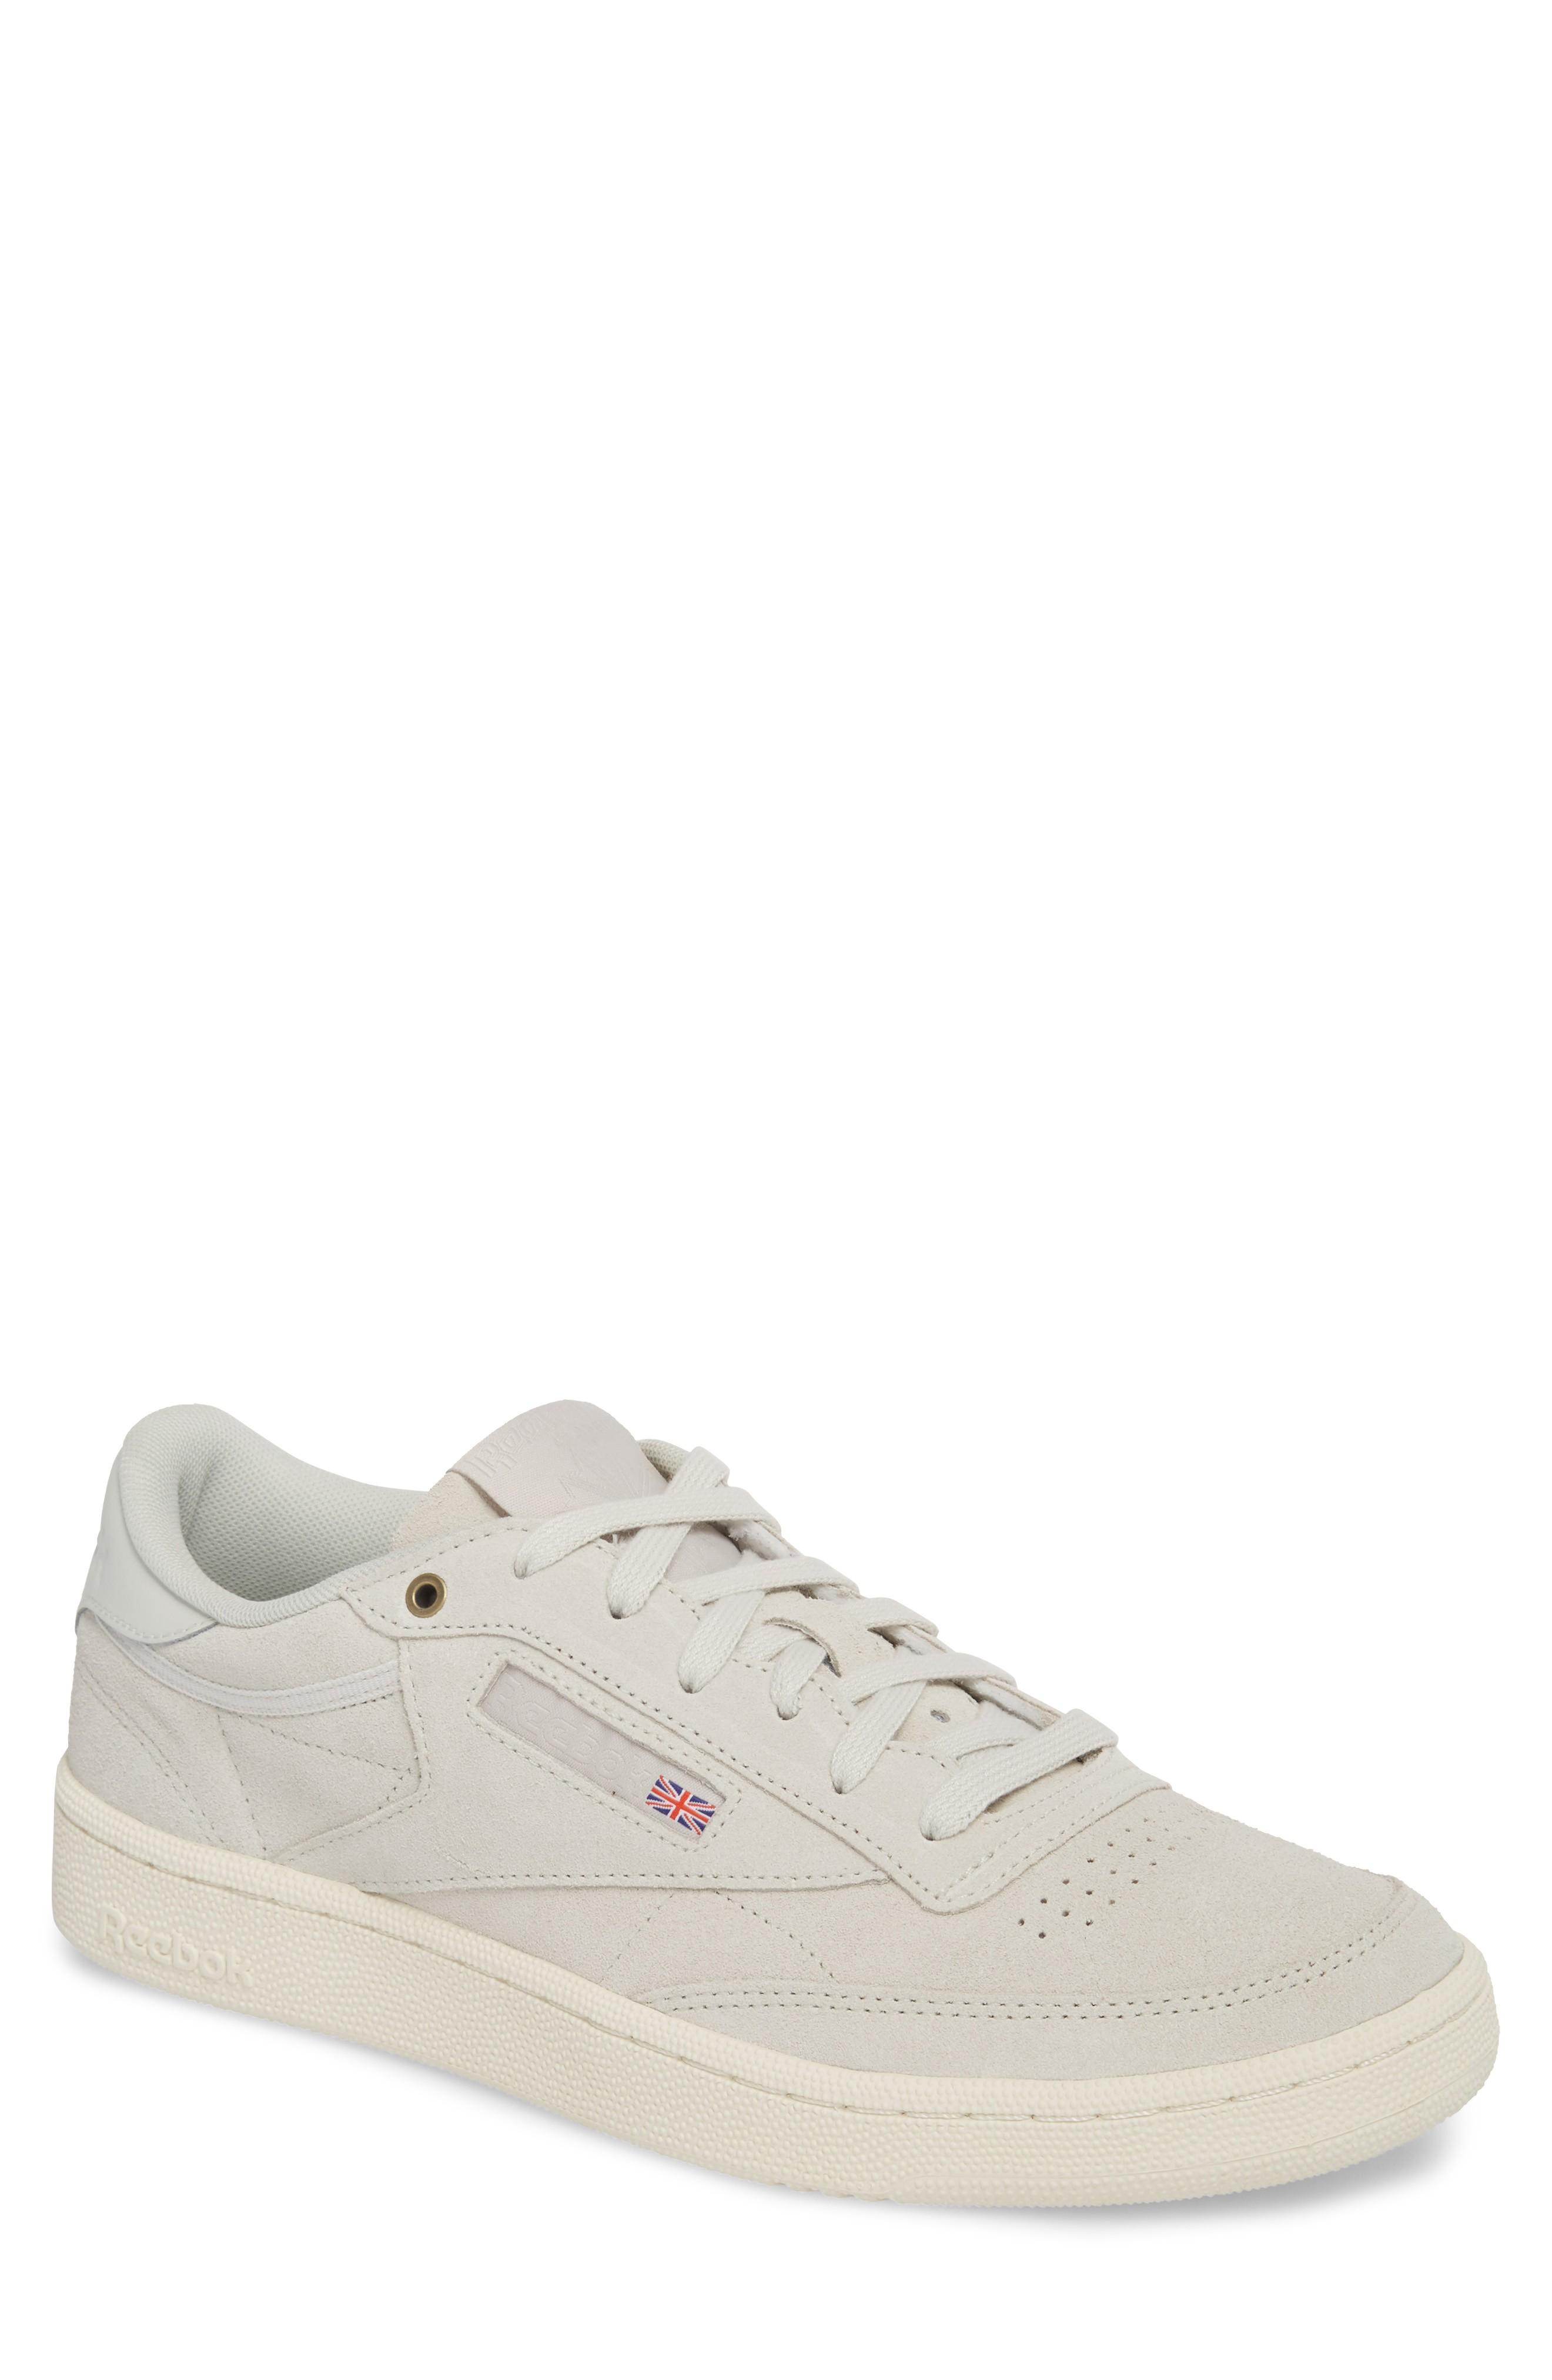 2d7a2992d2f ... cutout logo window detail the side of a sneaker styled for sporty-casual  versatility with a low top and a textured cupsole. Style Name  Reebok Club  C 85 ...